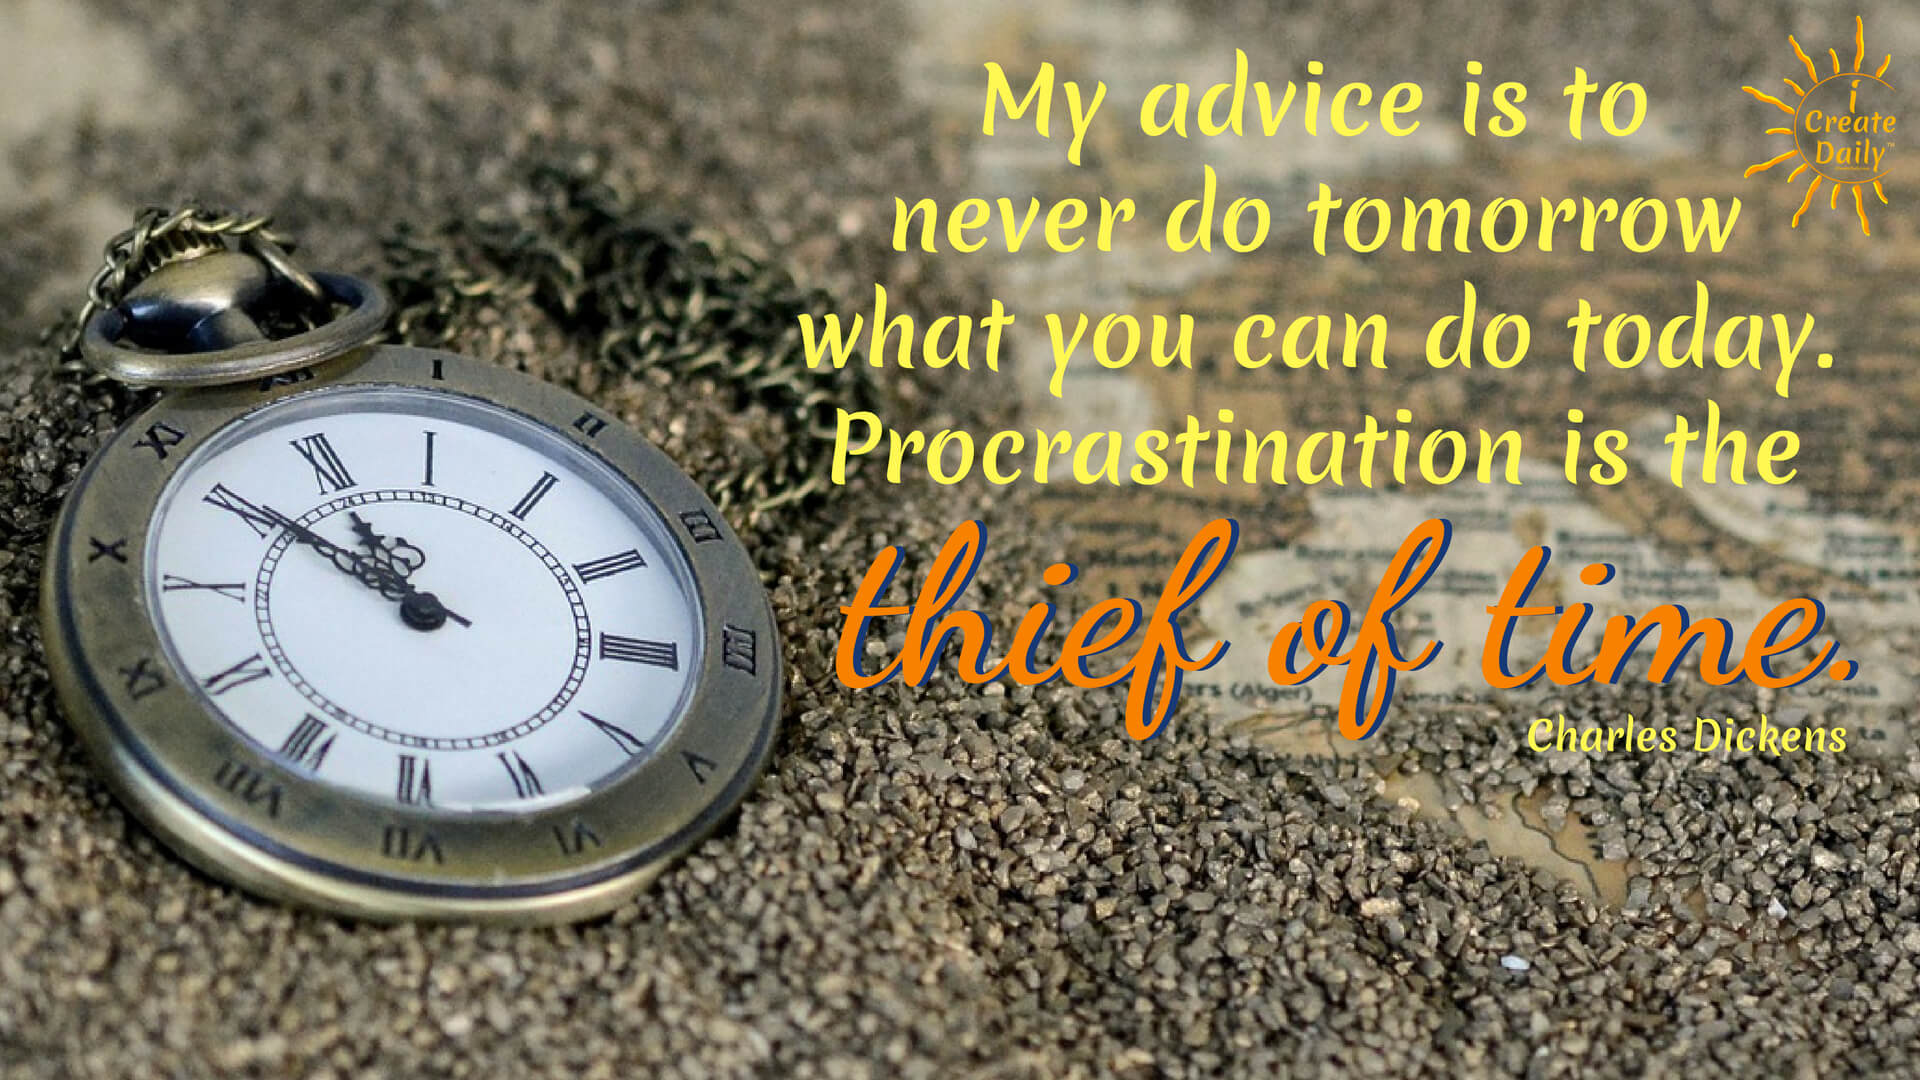 Charles Dickens Quote on Procrastination as the Thief of Time. #ProcrastinationQuotes #CharlesDickensQuotes #ThiefOfTimeQuote #PersonalDevelopment #iCreateDaily